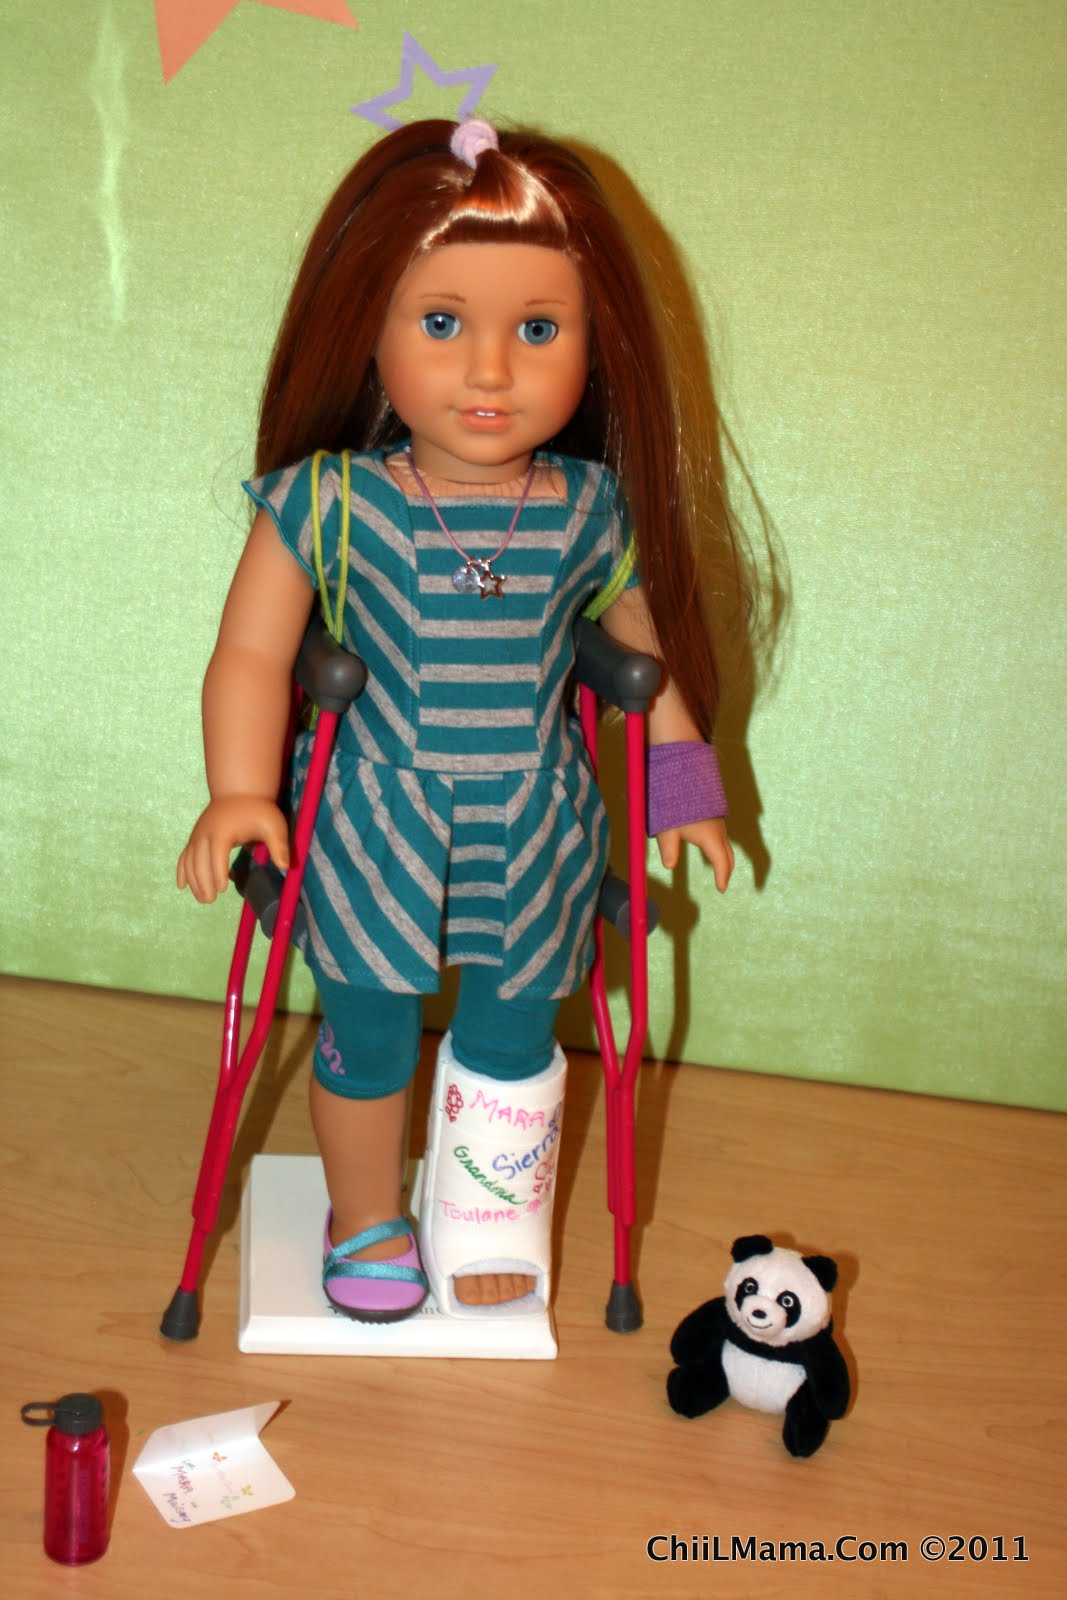 Doll Leg Cast http://www.chiilmama.com/2012/01/welcome-mckenna-american-girl-doll-of.html